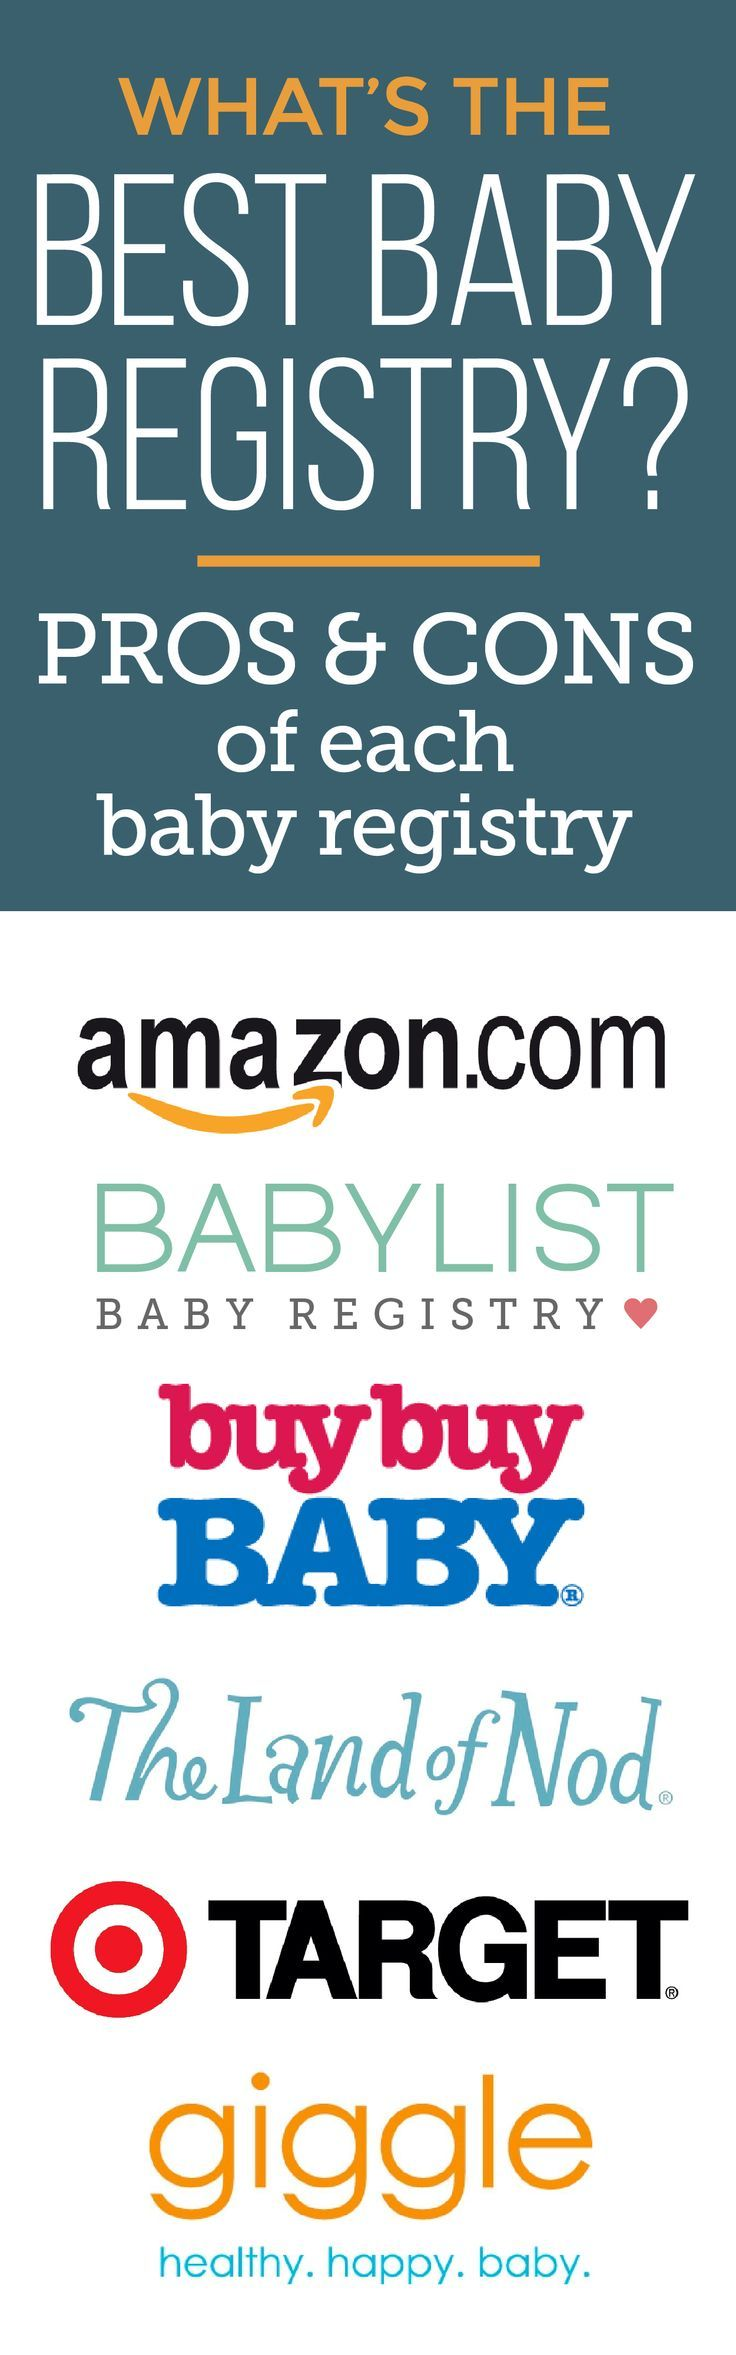 ...because how else are you supposed to figure out the best baby registry for you?